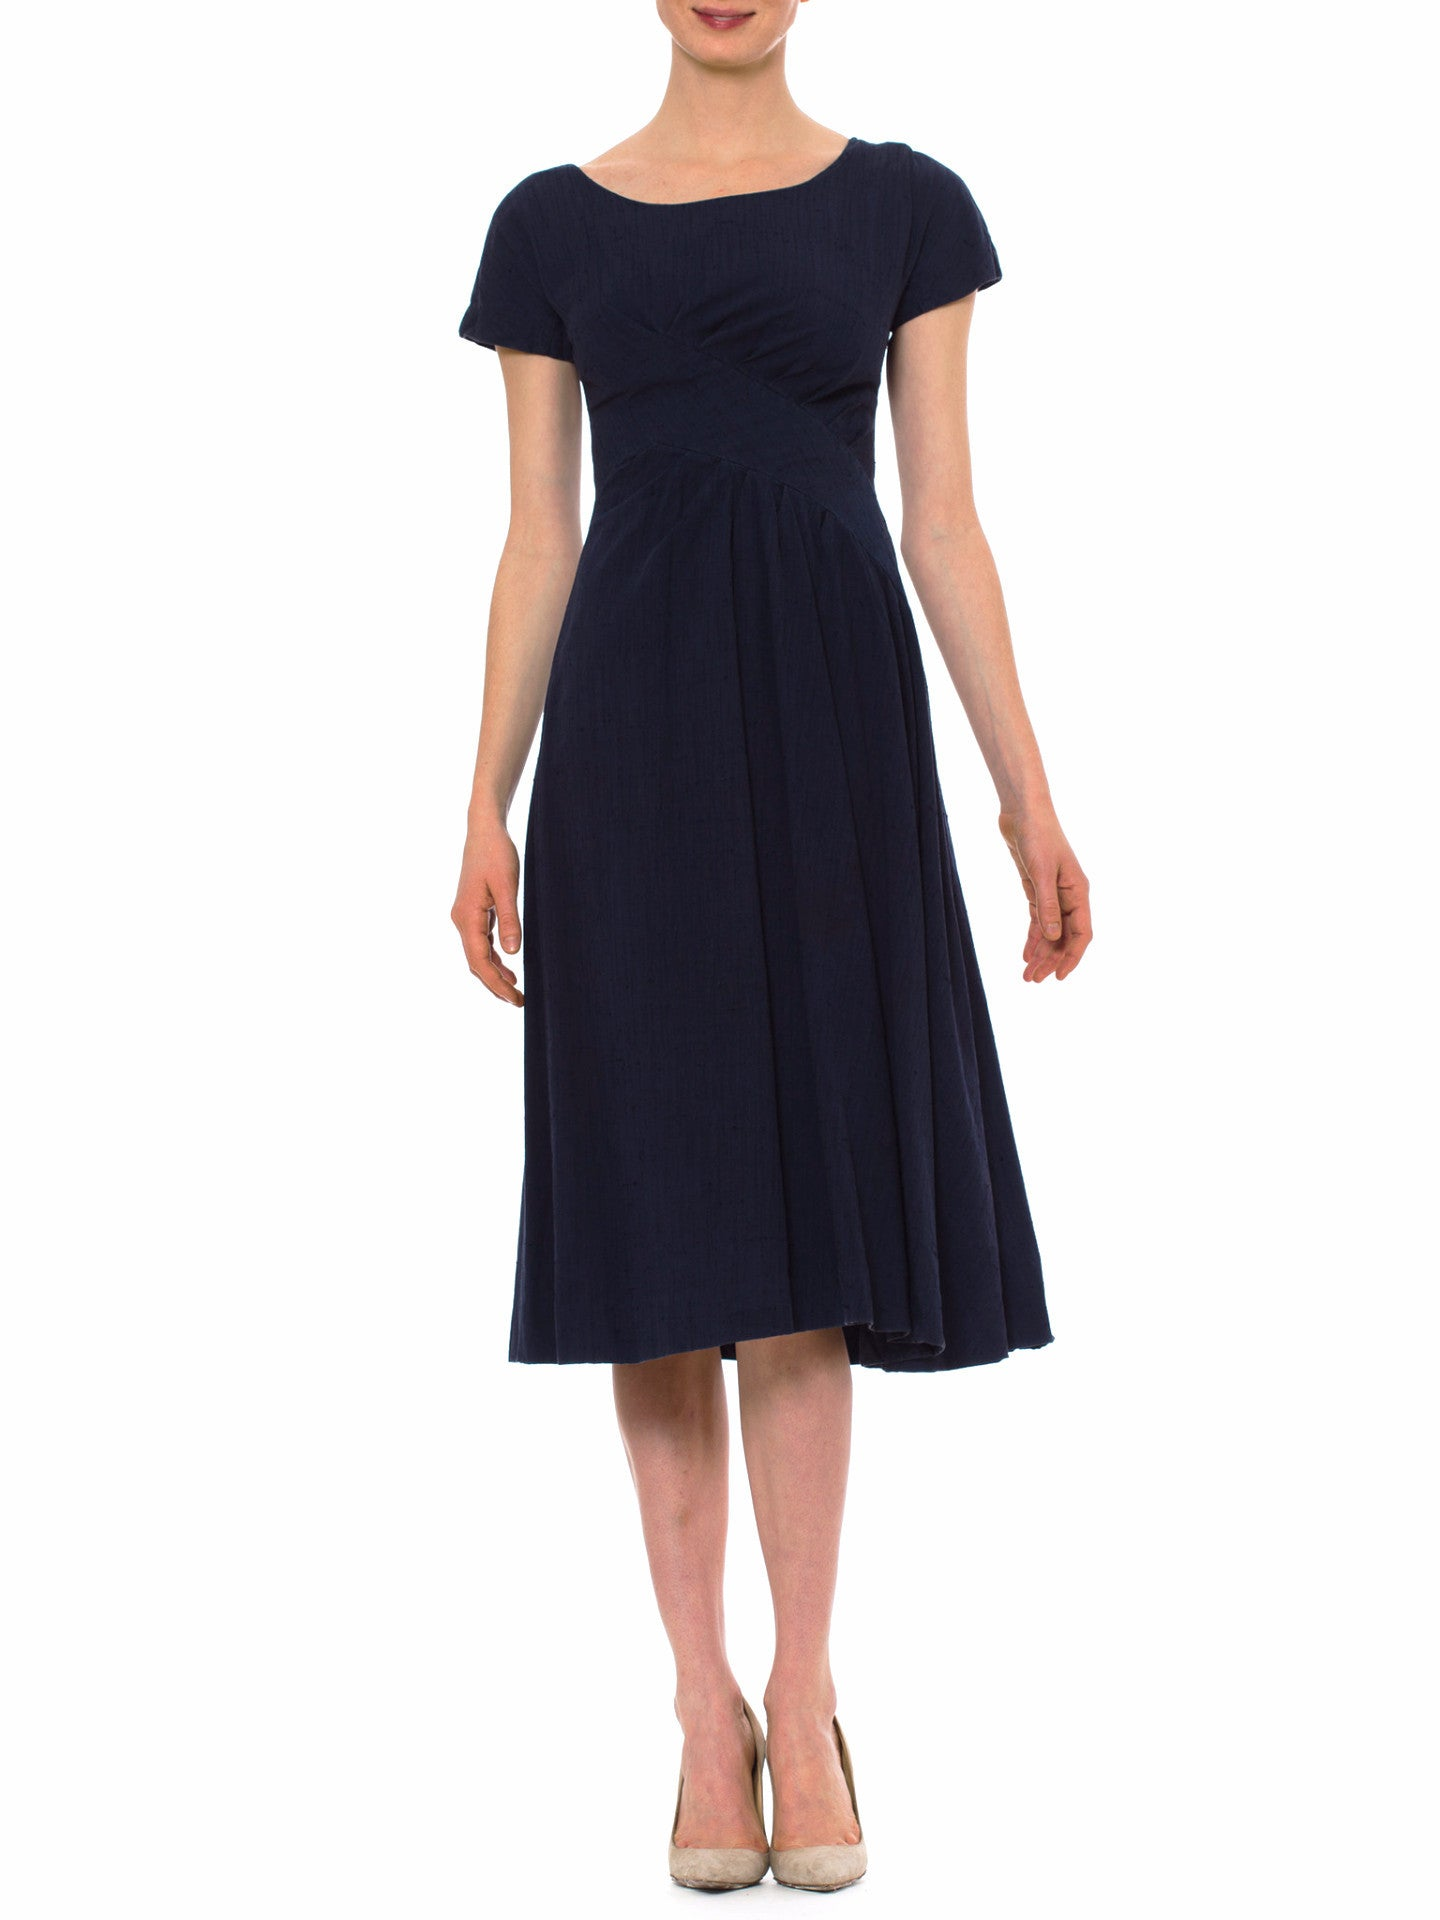 Vintage Suzy Perette 1950s Navy Pleated Dress